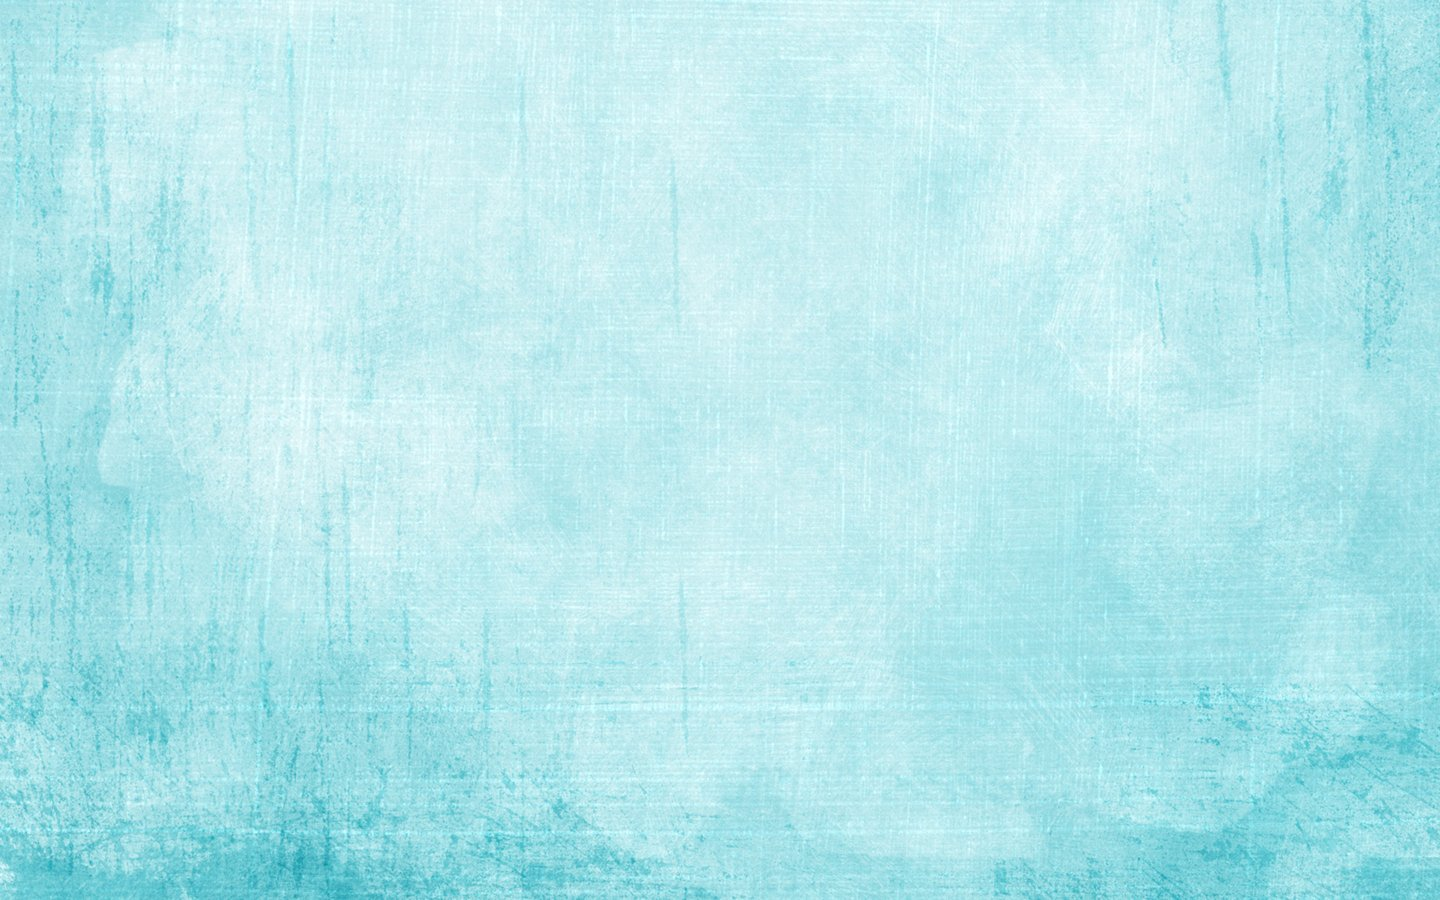 Blue vintage wallpaper background 19820